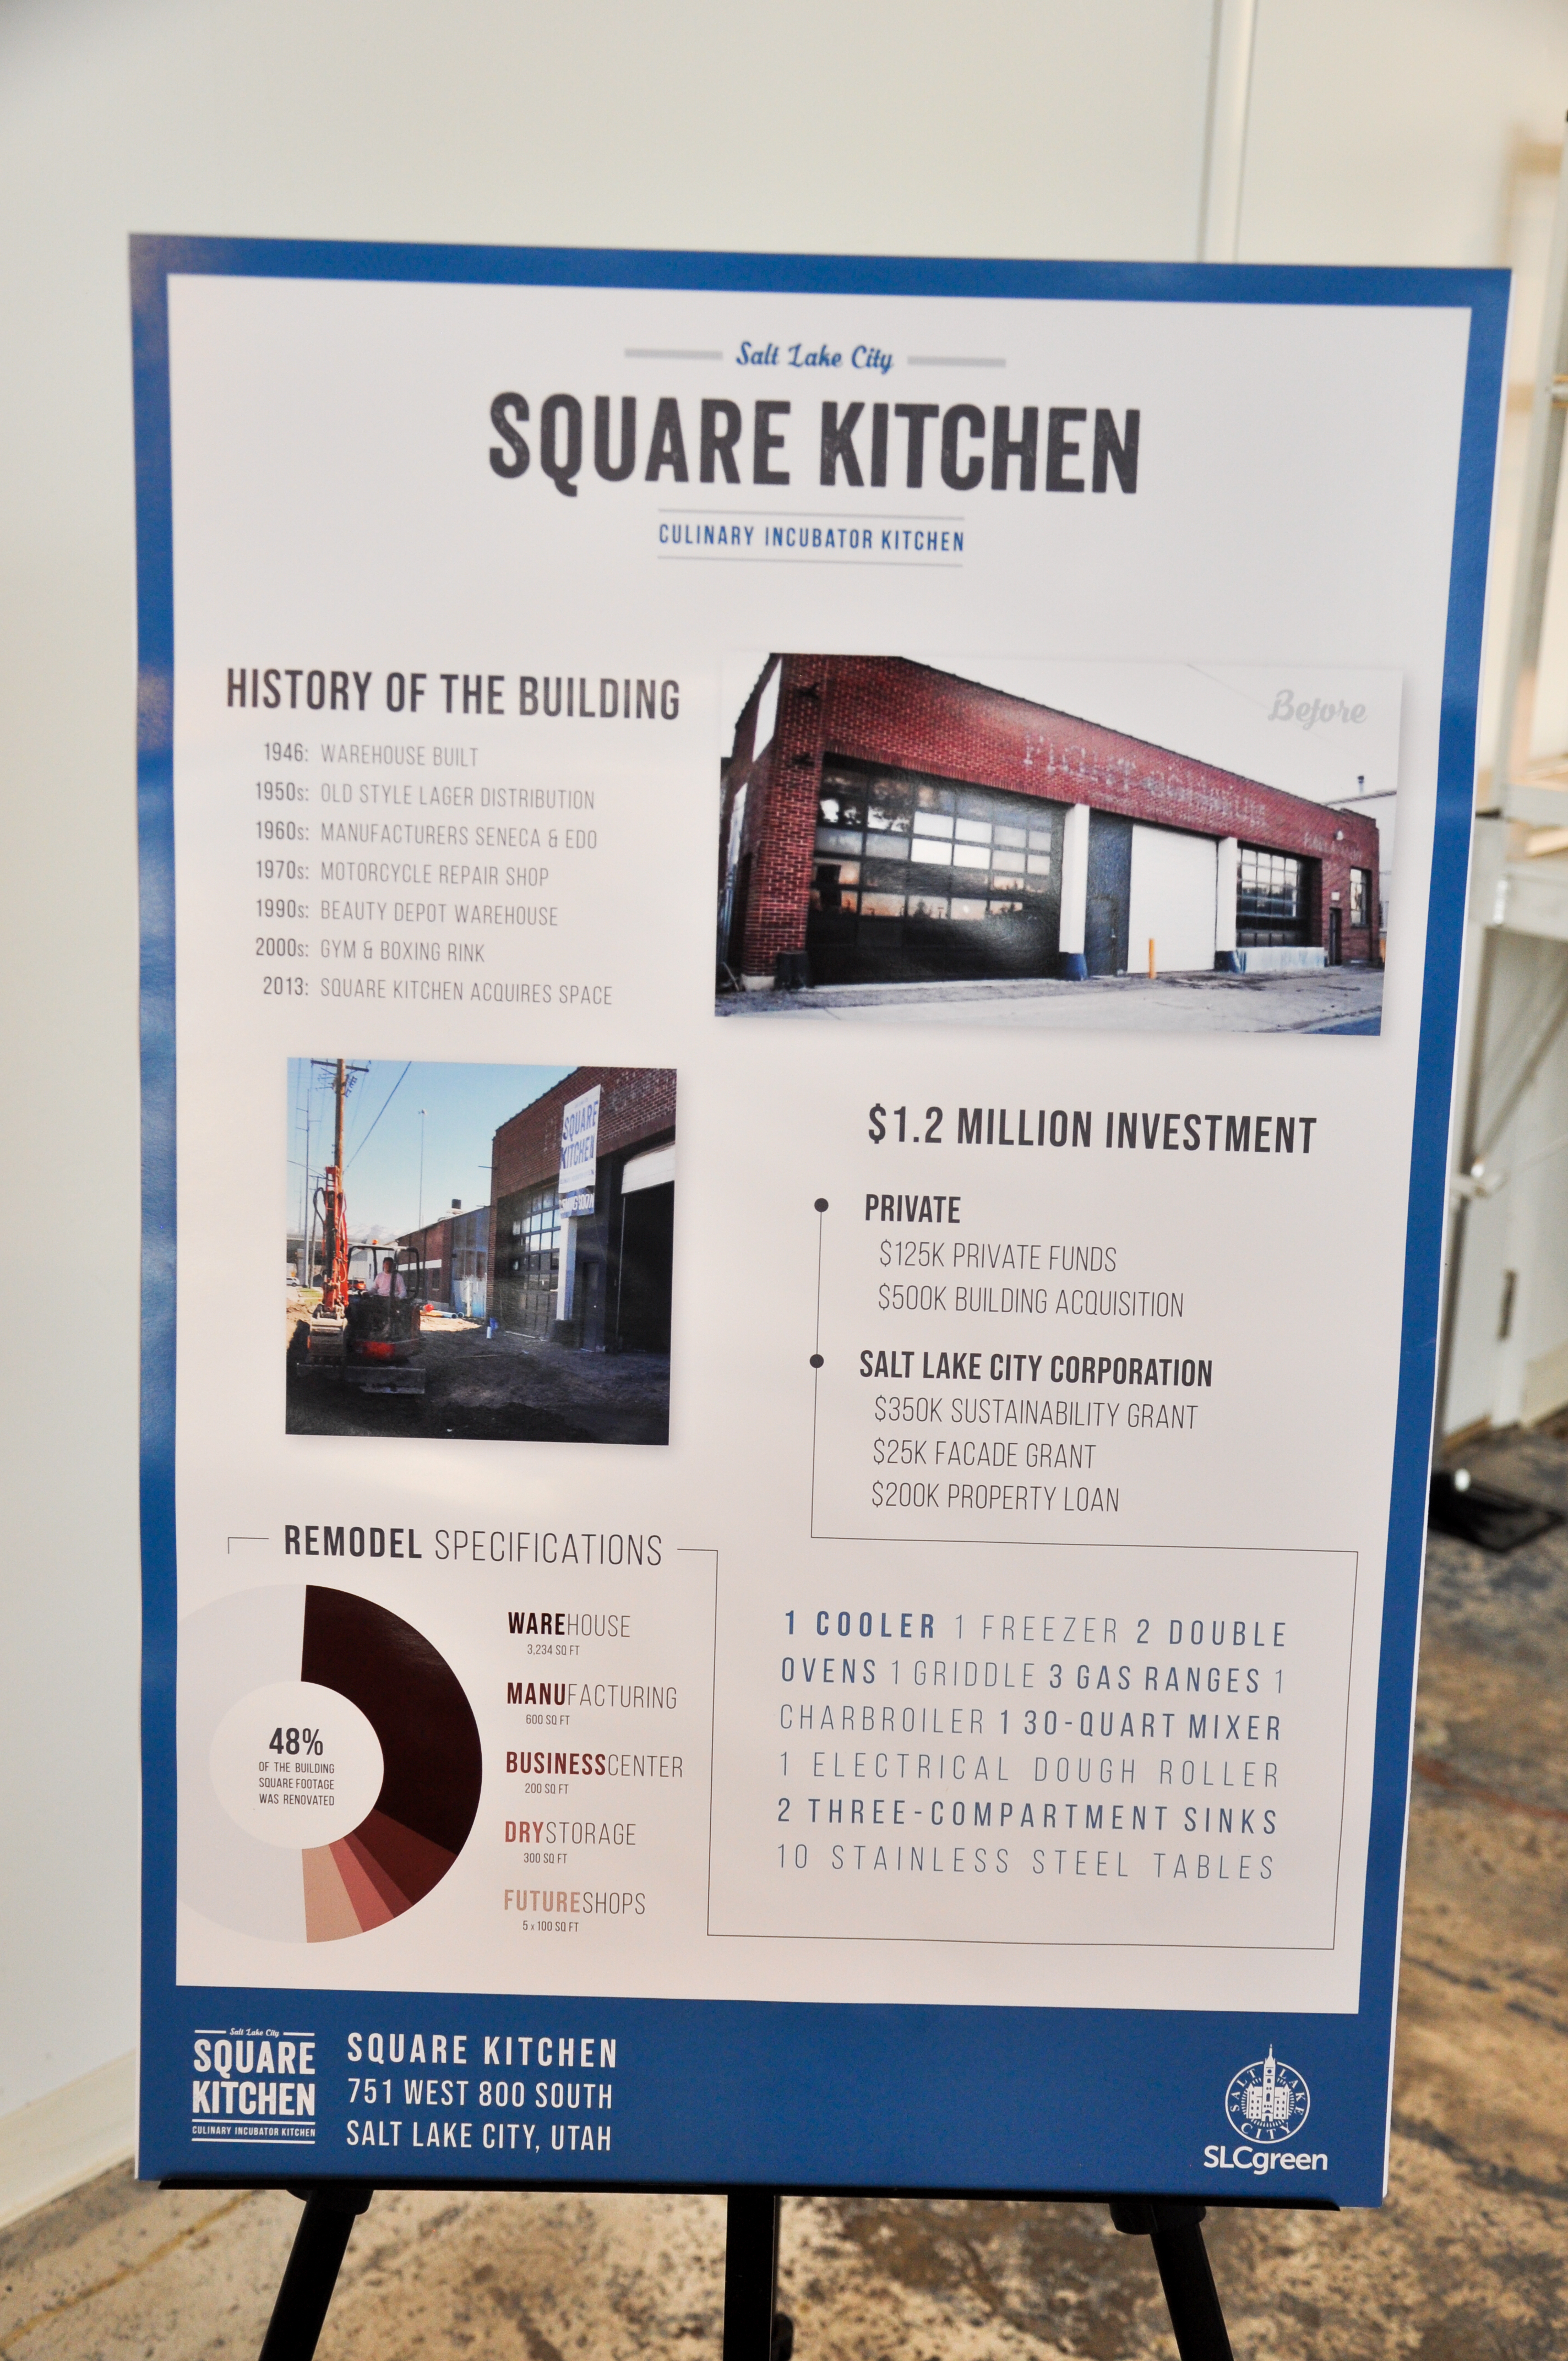 The Square Kitchen Opens Today! | slcGreen Blog